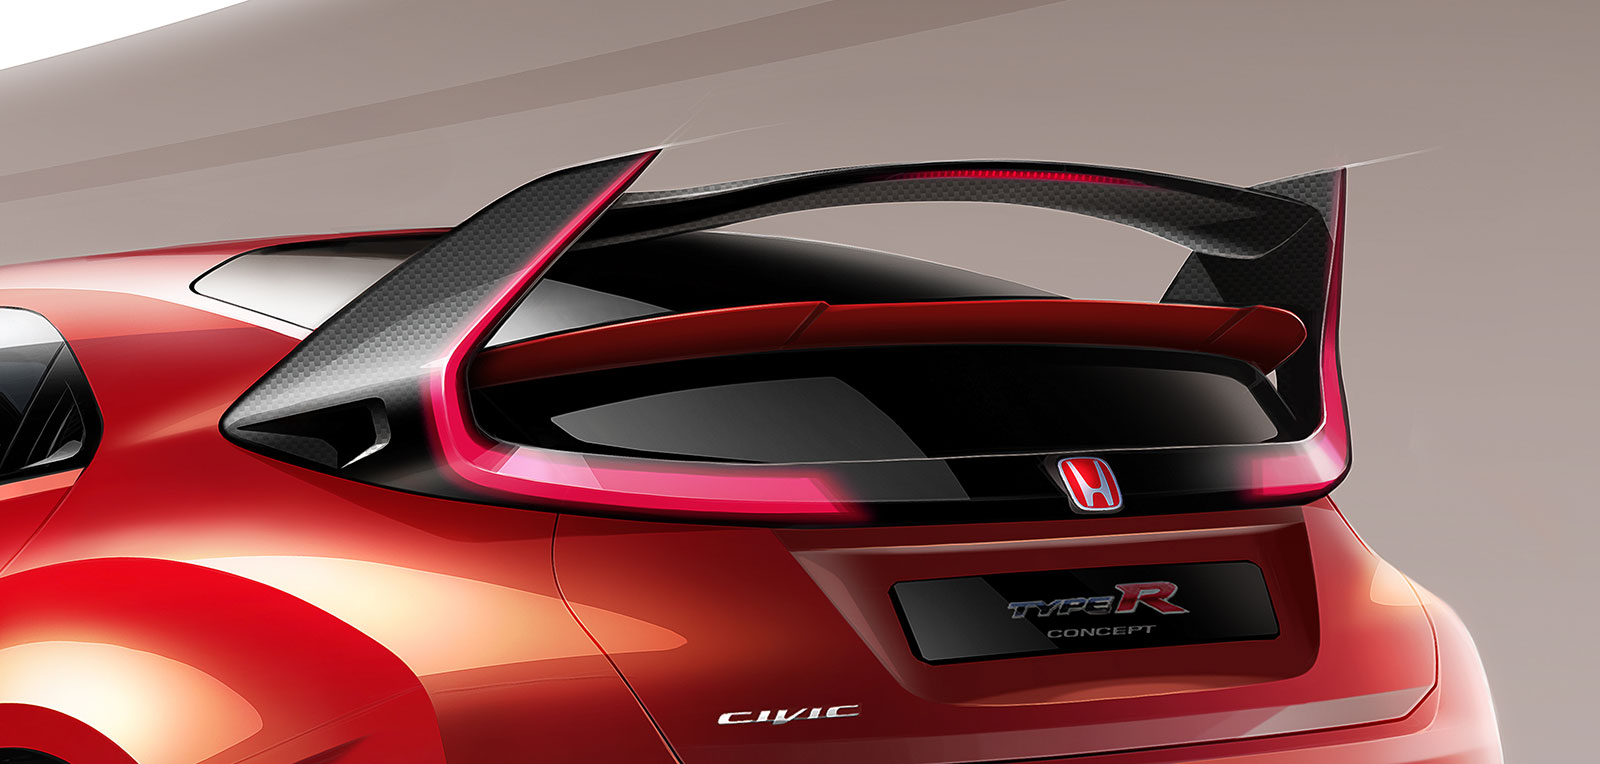 honda previews civic type r concept ahead of geneva debut. Black Bedroom Furniture Sets. Home Design Ideas